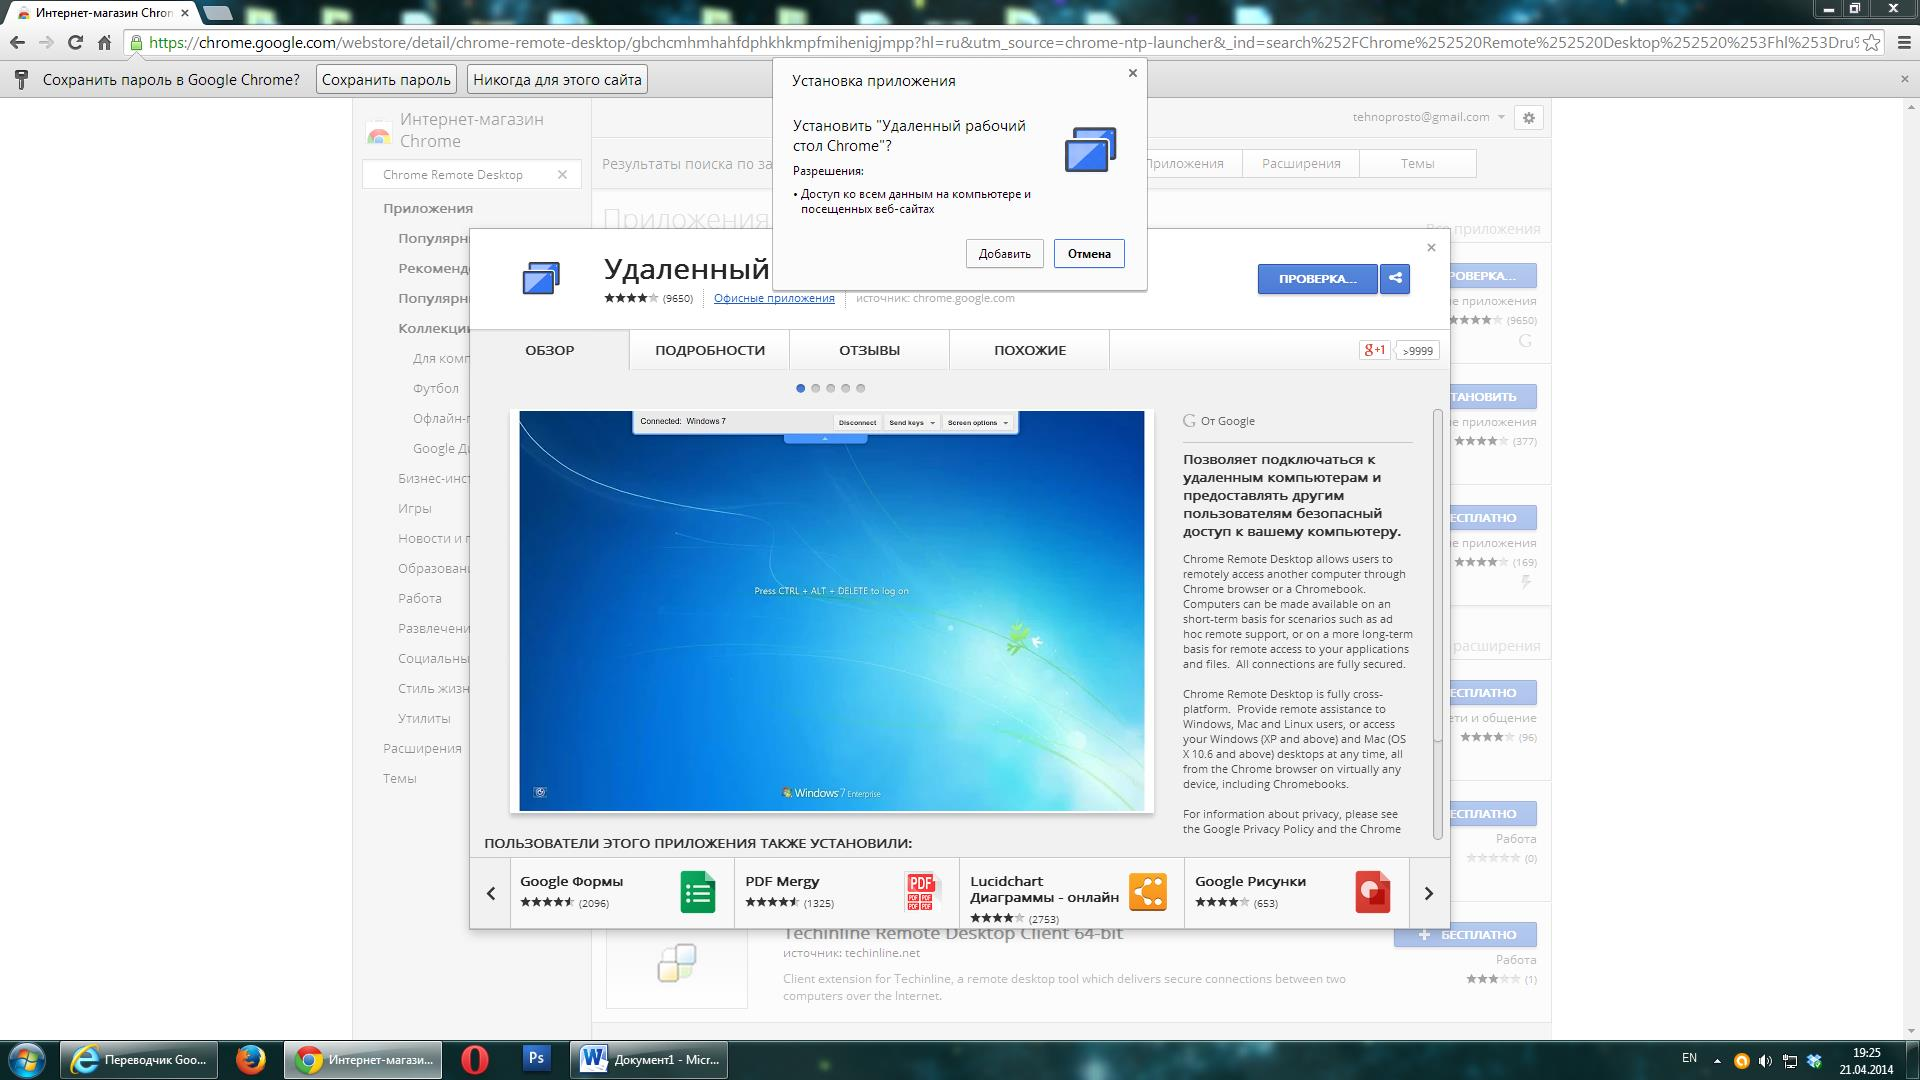 Как установить Chrome Remote Desktop?